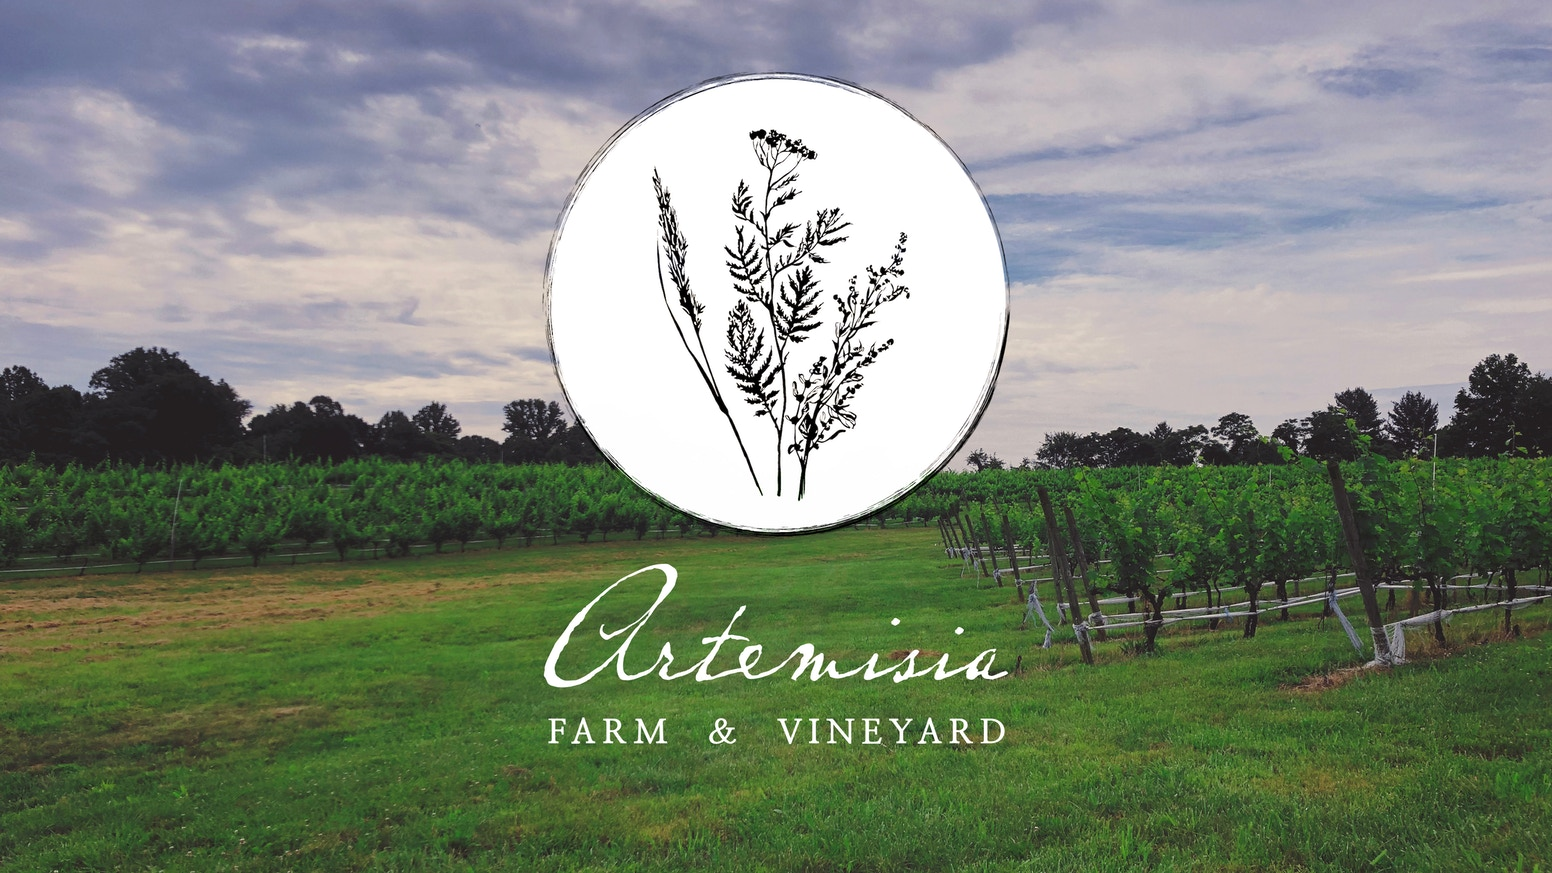 Cultivating sustainable food and wine culture in rural Virginia.